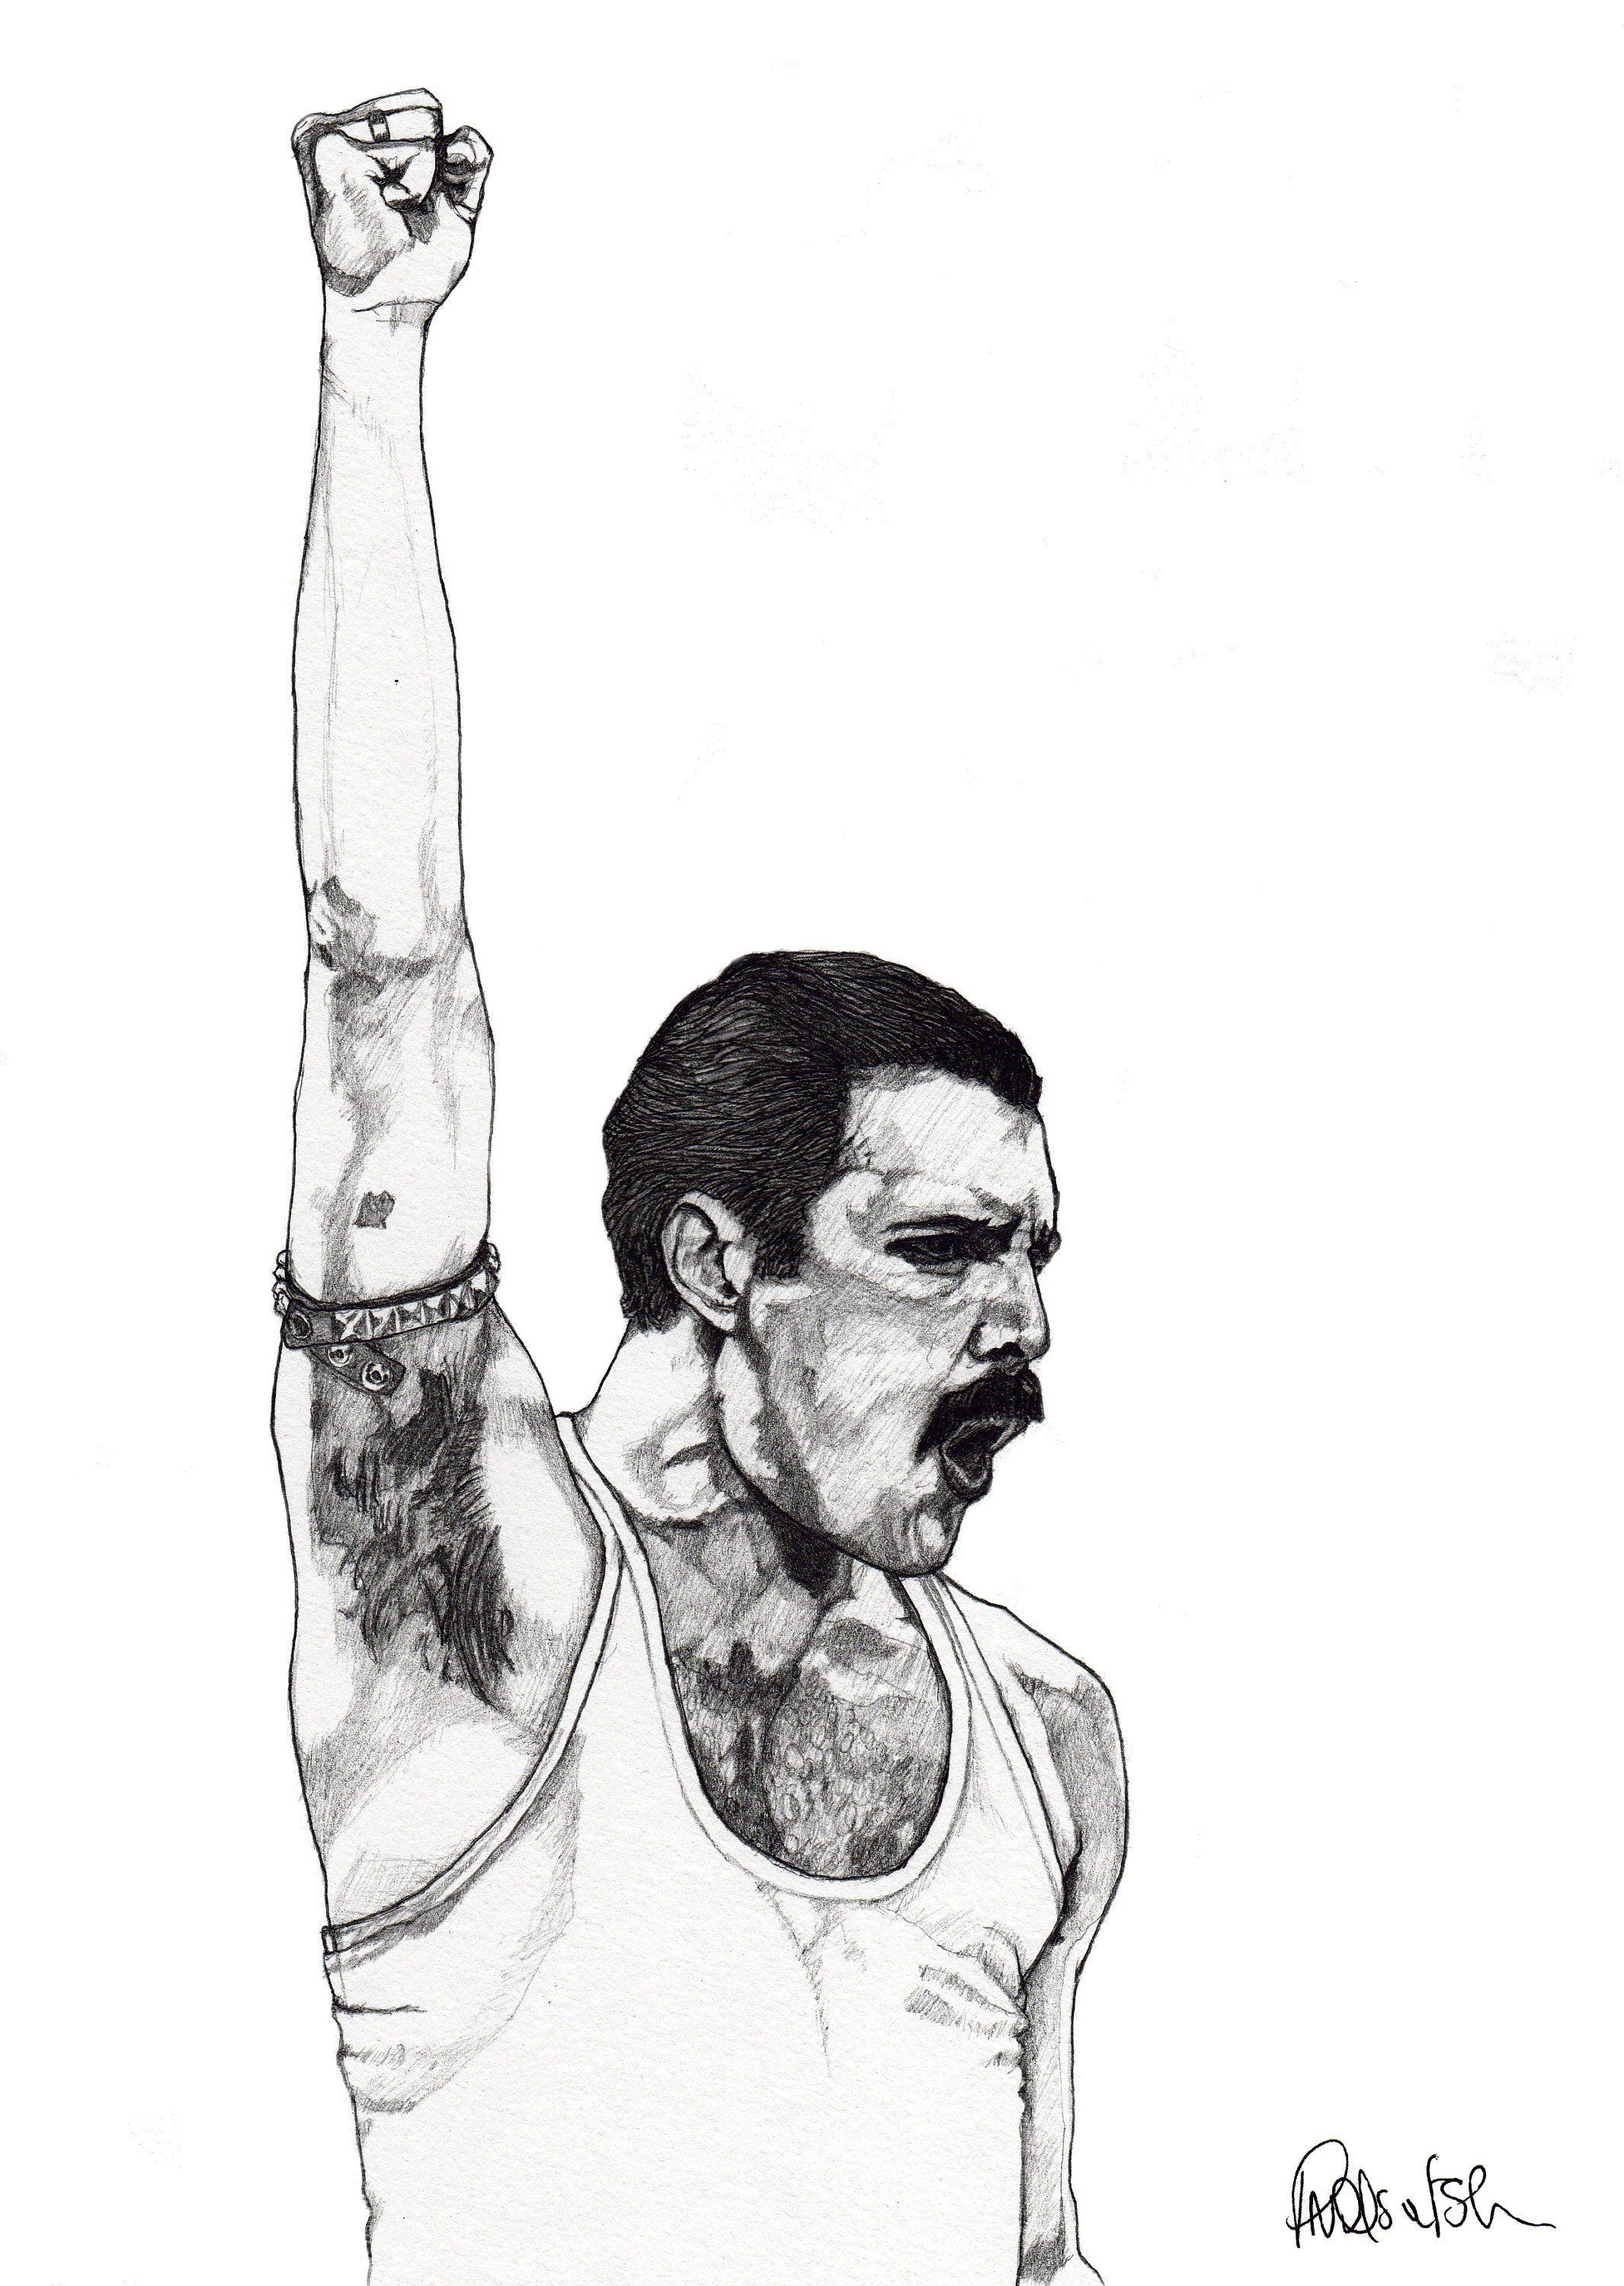 freddie mercury drawing fine art pencil illustration etsy in 2020 queen art queen drawing music drawings freddie mercury drawing fine art pencil